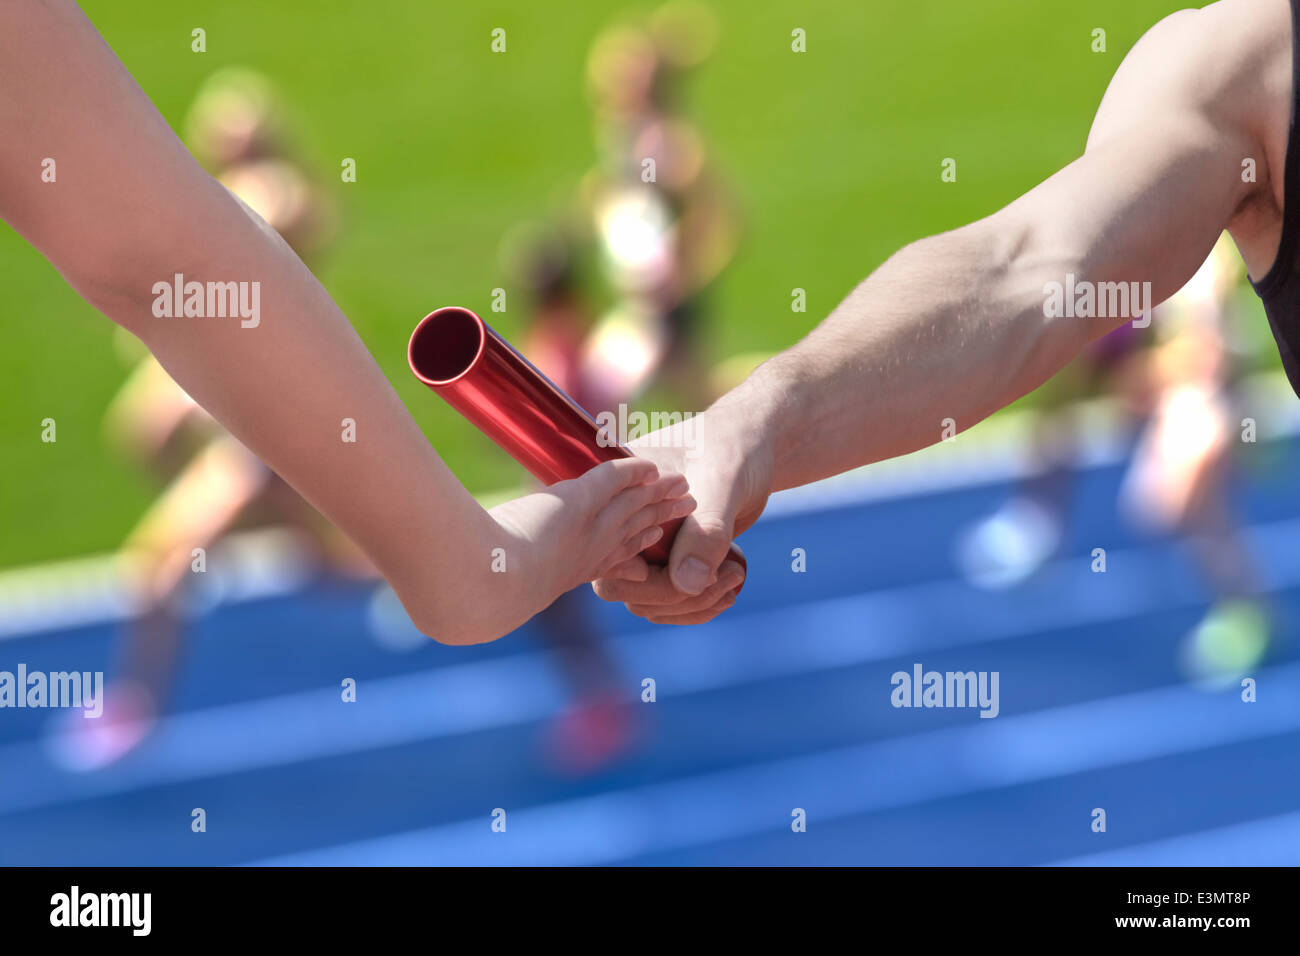 Male relay runner hands over the red baton to female runner - Stock Image